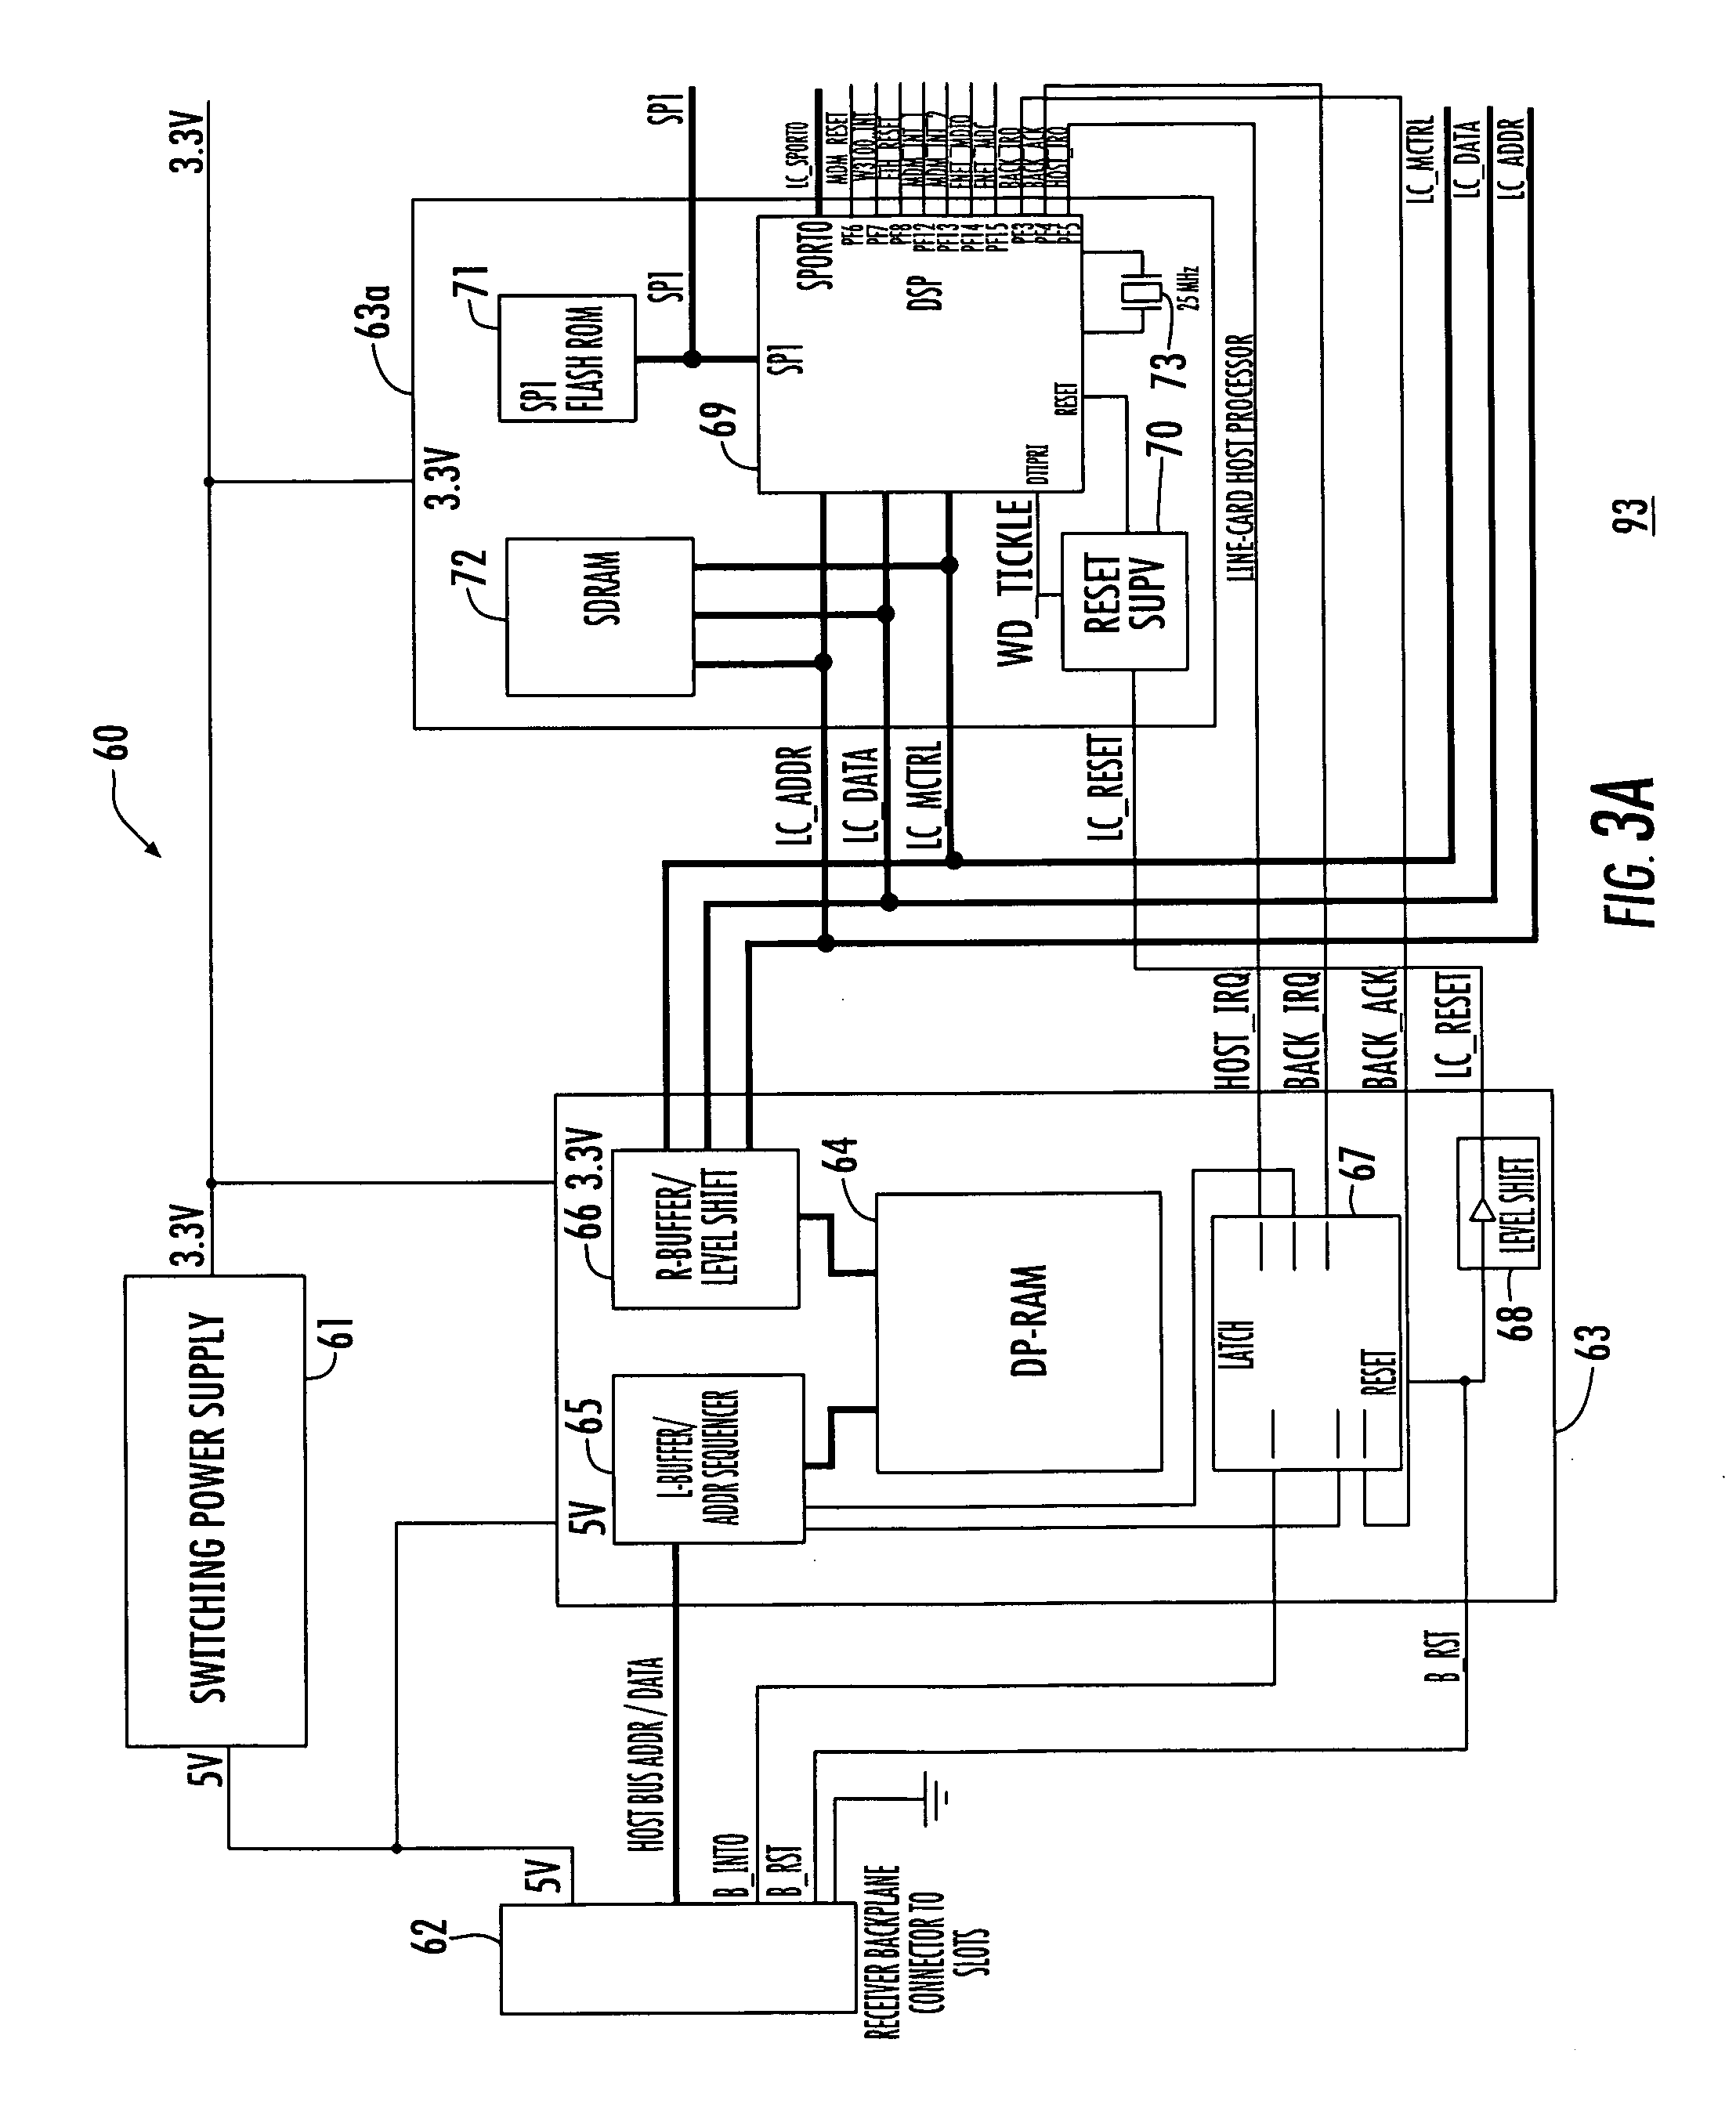 US20090058630A1 20090305 D00004?resize\\\\\\\=665%2C814 goodman sequencer wiring diagram fan carrier heat pump schematic Coleman Furnace Wiring Diagram at soozxer.org